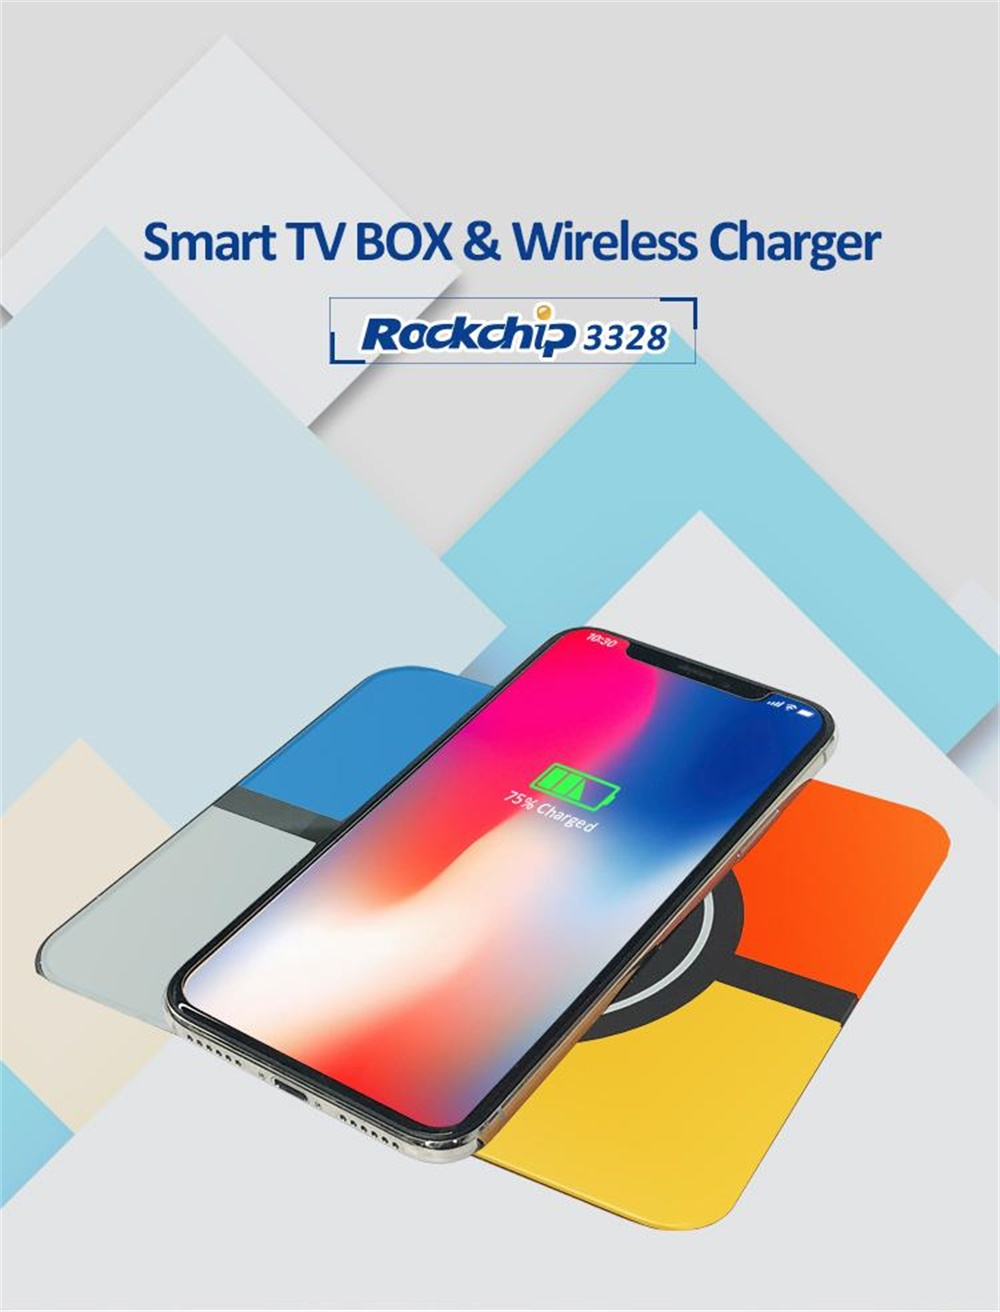 Buy R Tv Box S10 Plus 4gb Ram 32gb Rom With Wireless Charging And Inductor Coil For Camera Power Coilinductor